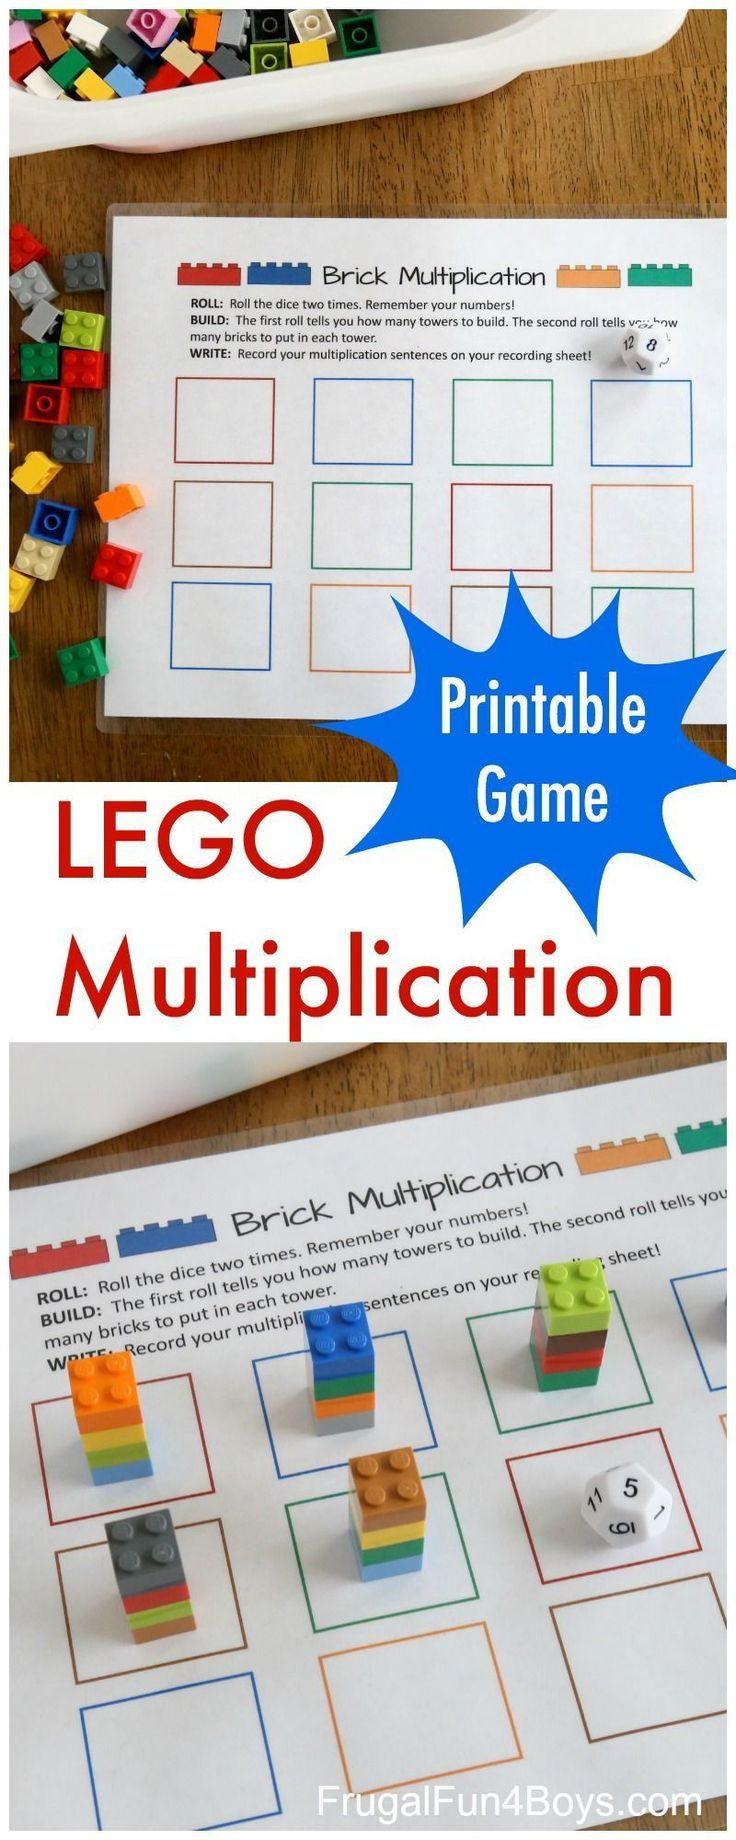 Printable LEGO Multiplication Game! A great free math game for kids! #freemathgames #LEGO #mathgamesforkids #mathpracticeonline #learnmathonline